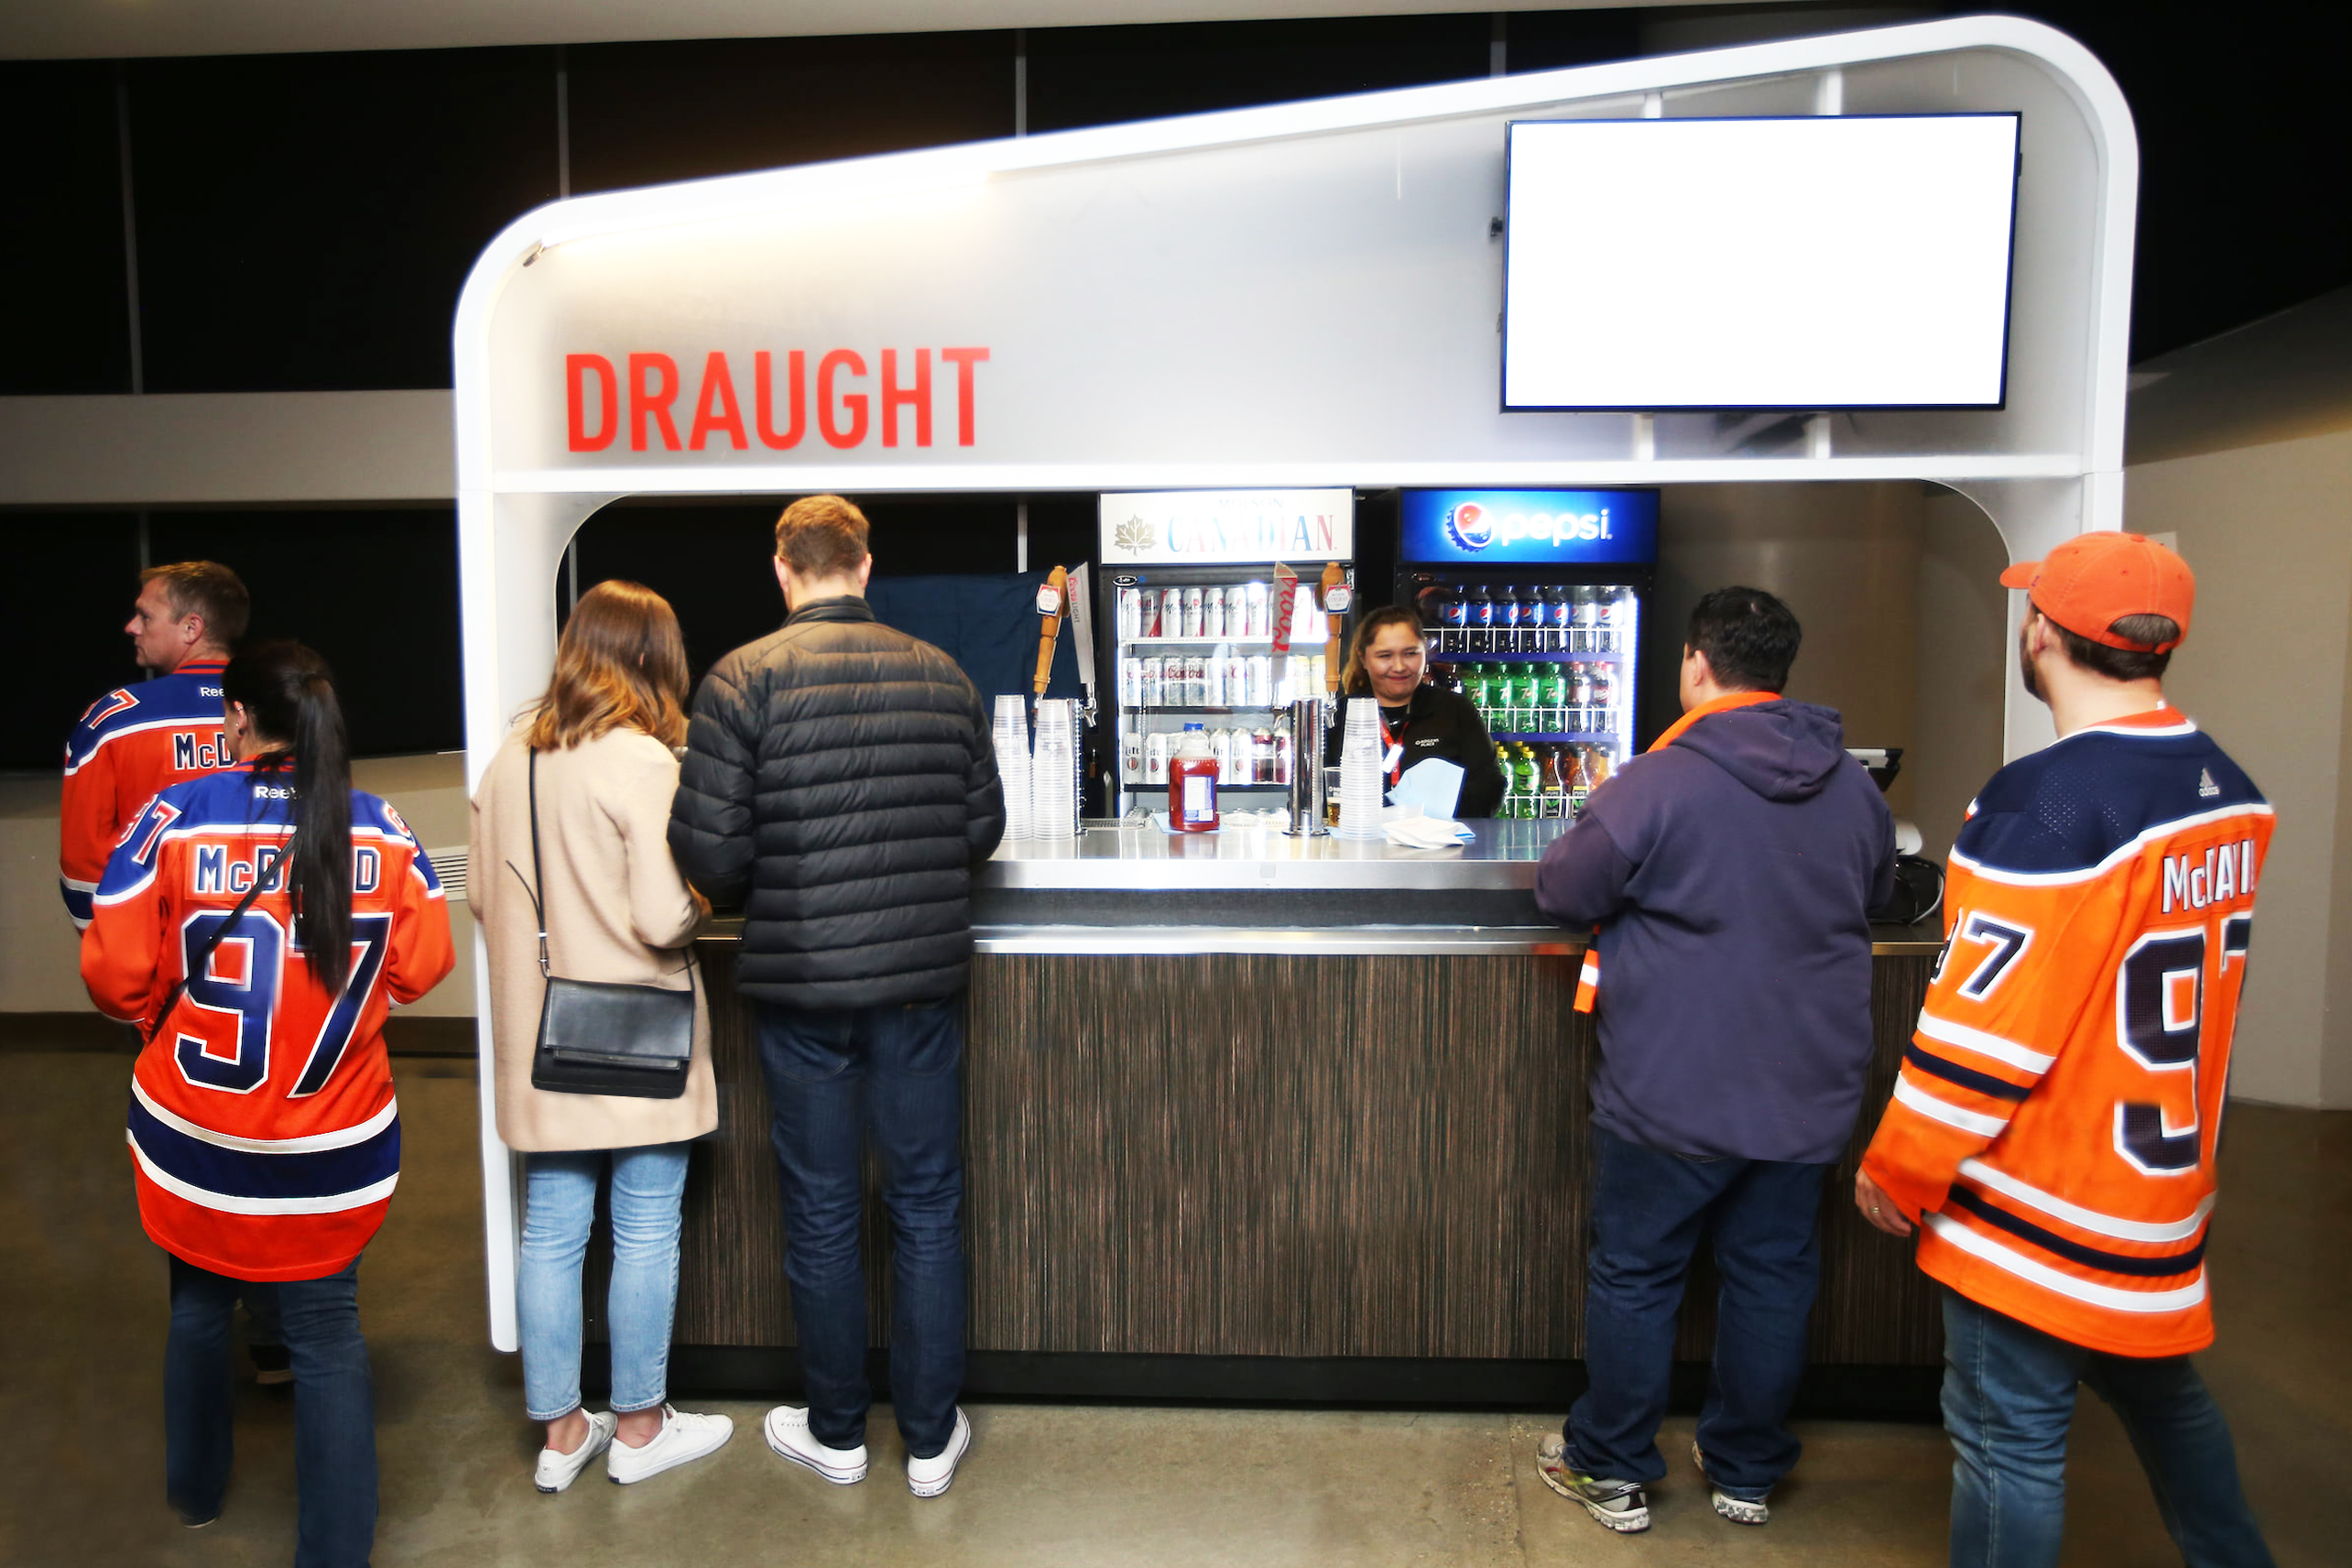 Draught (Section 204)